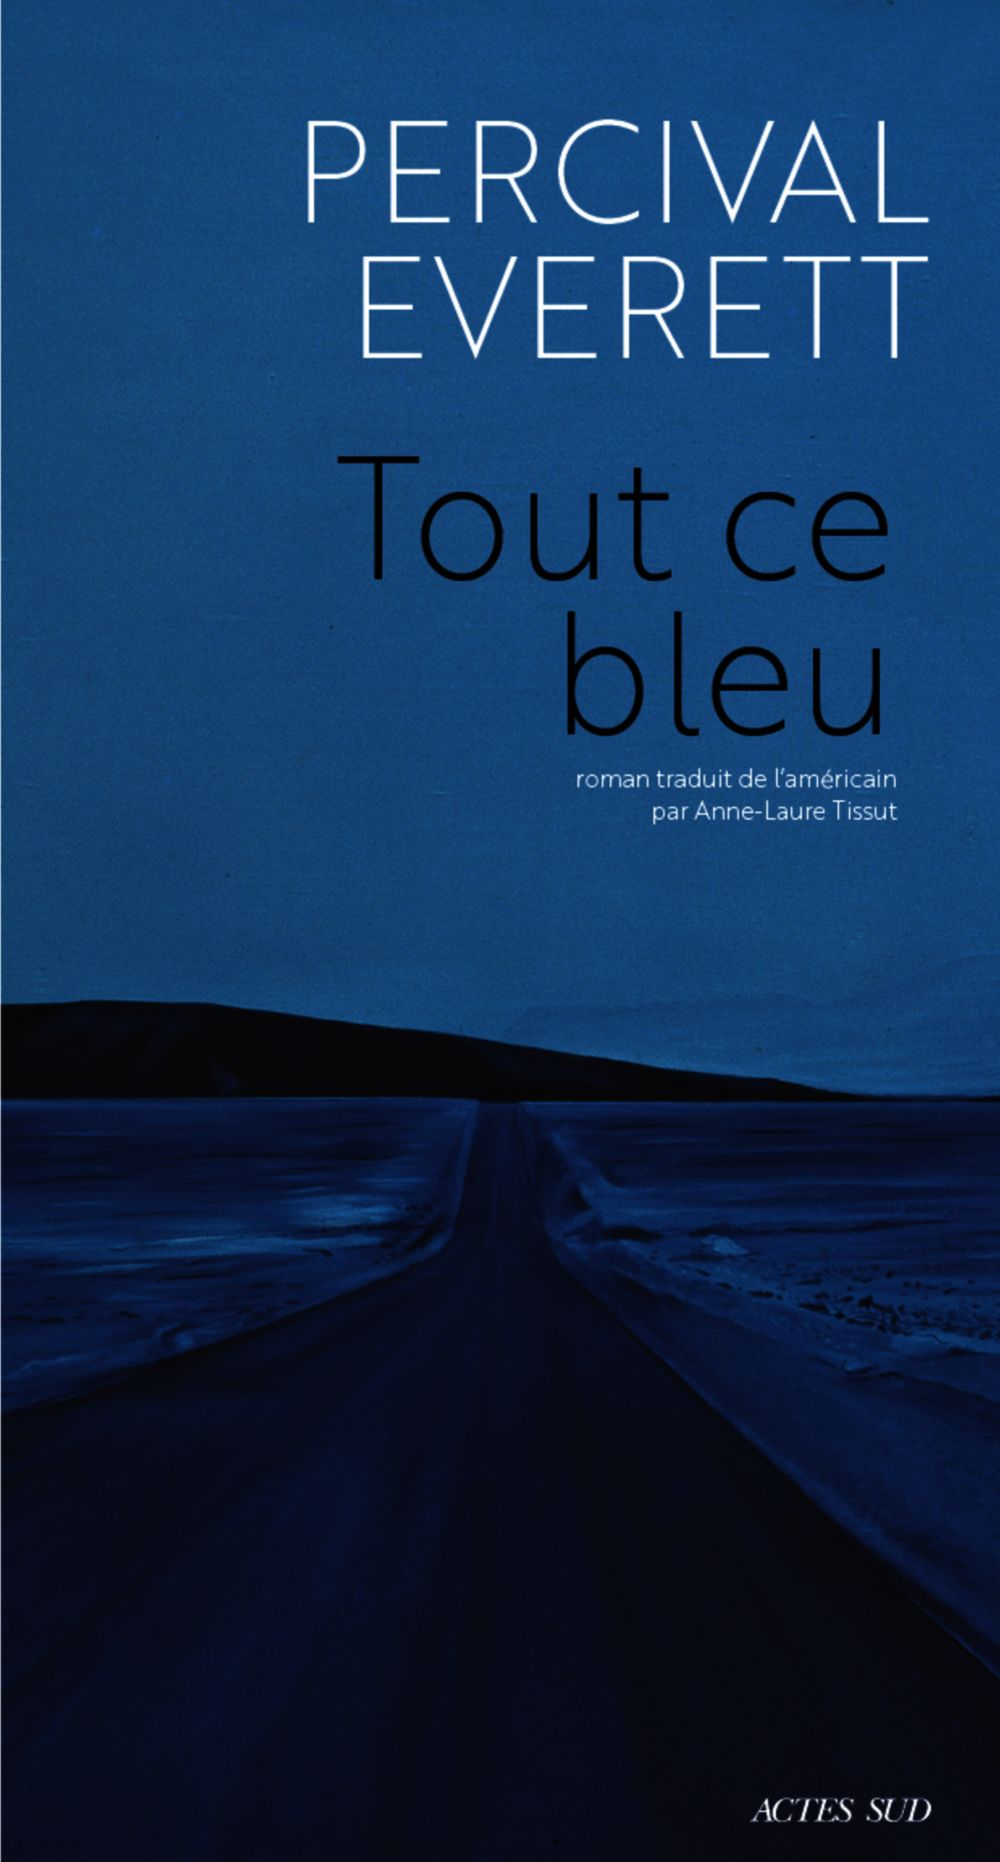 Tout ce bleu | Everett, Percival. Auteur